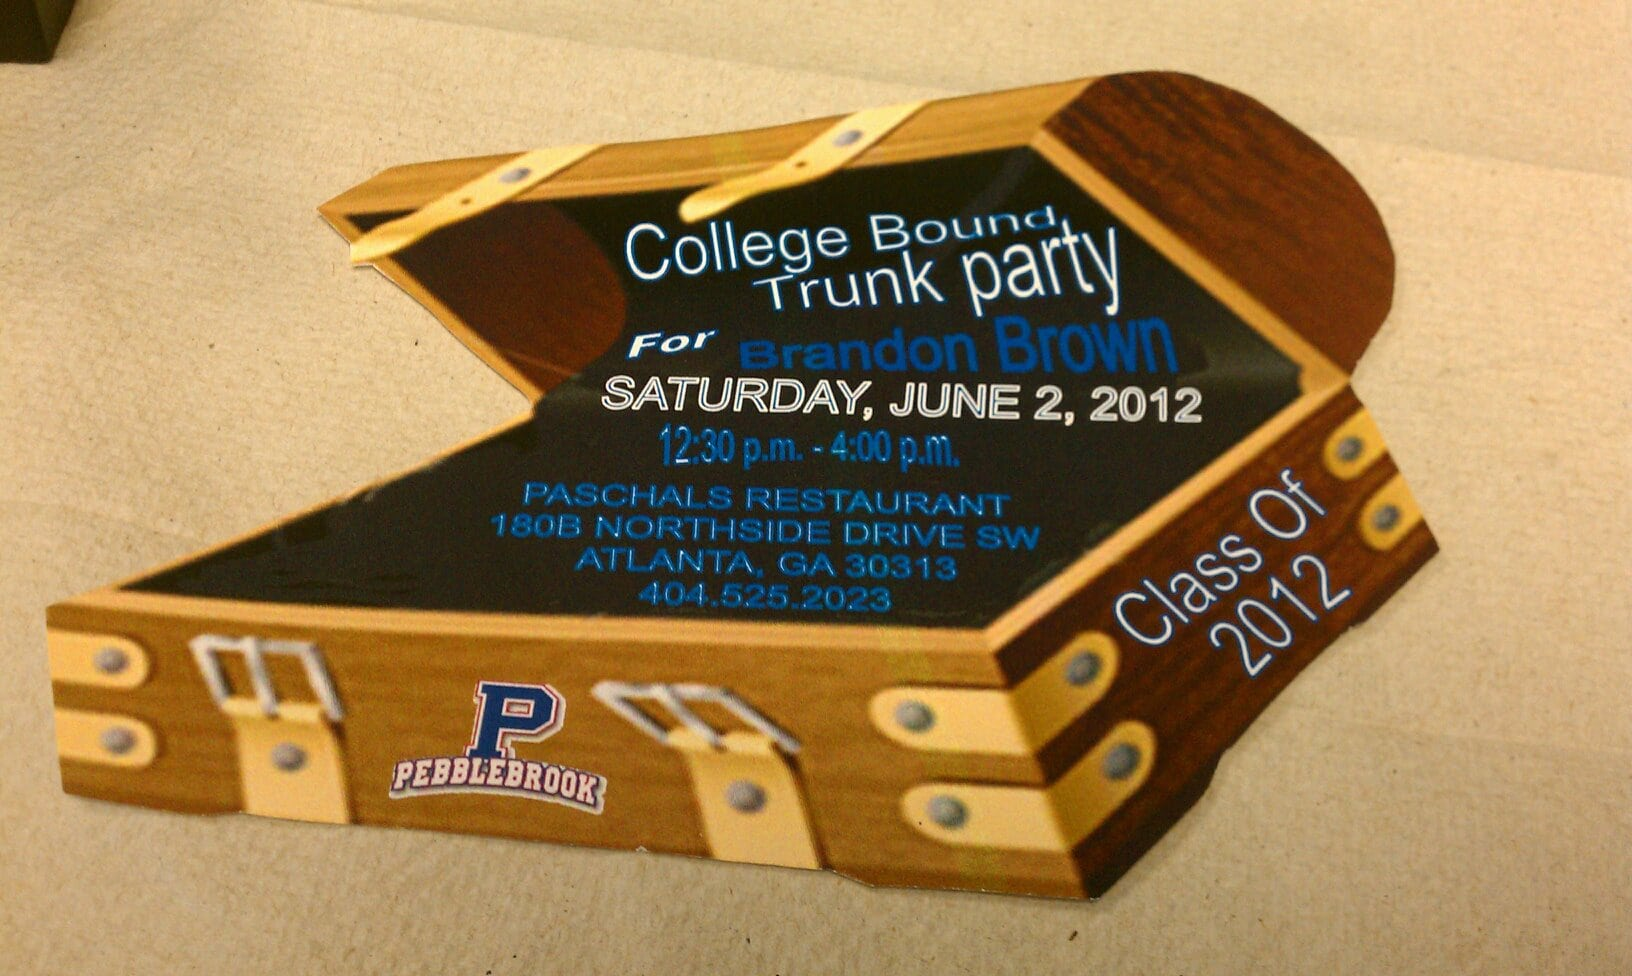 College Trunk Party Invitations Free